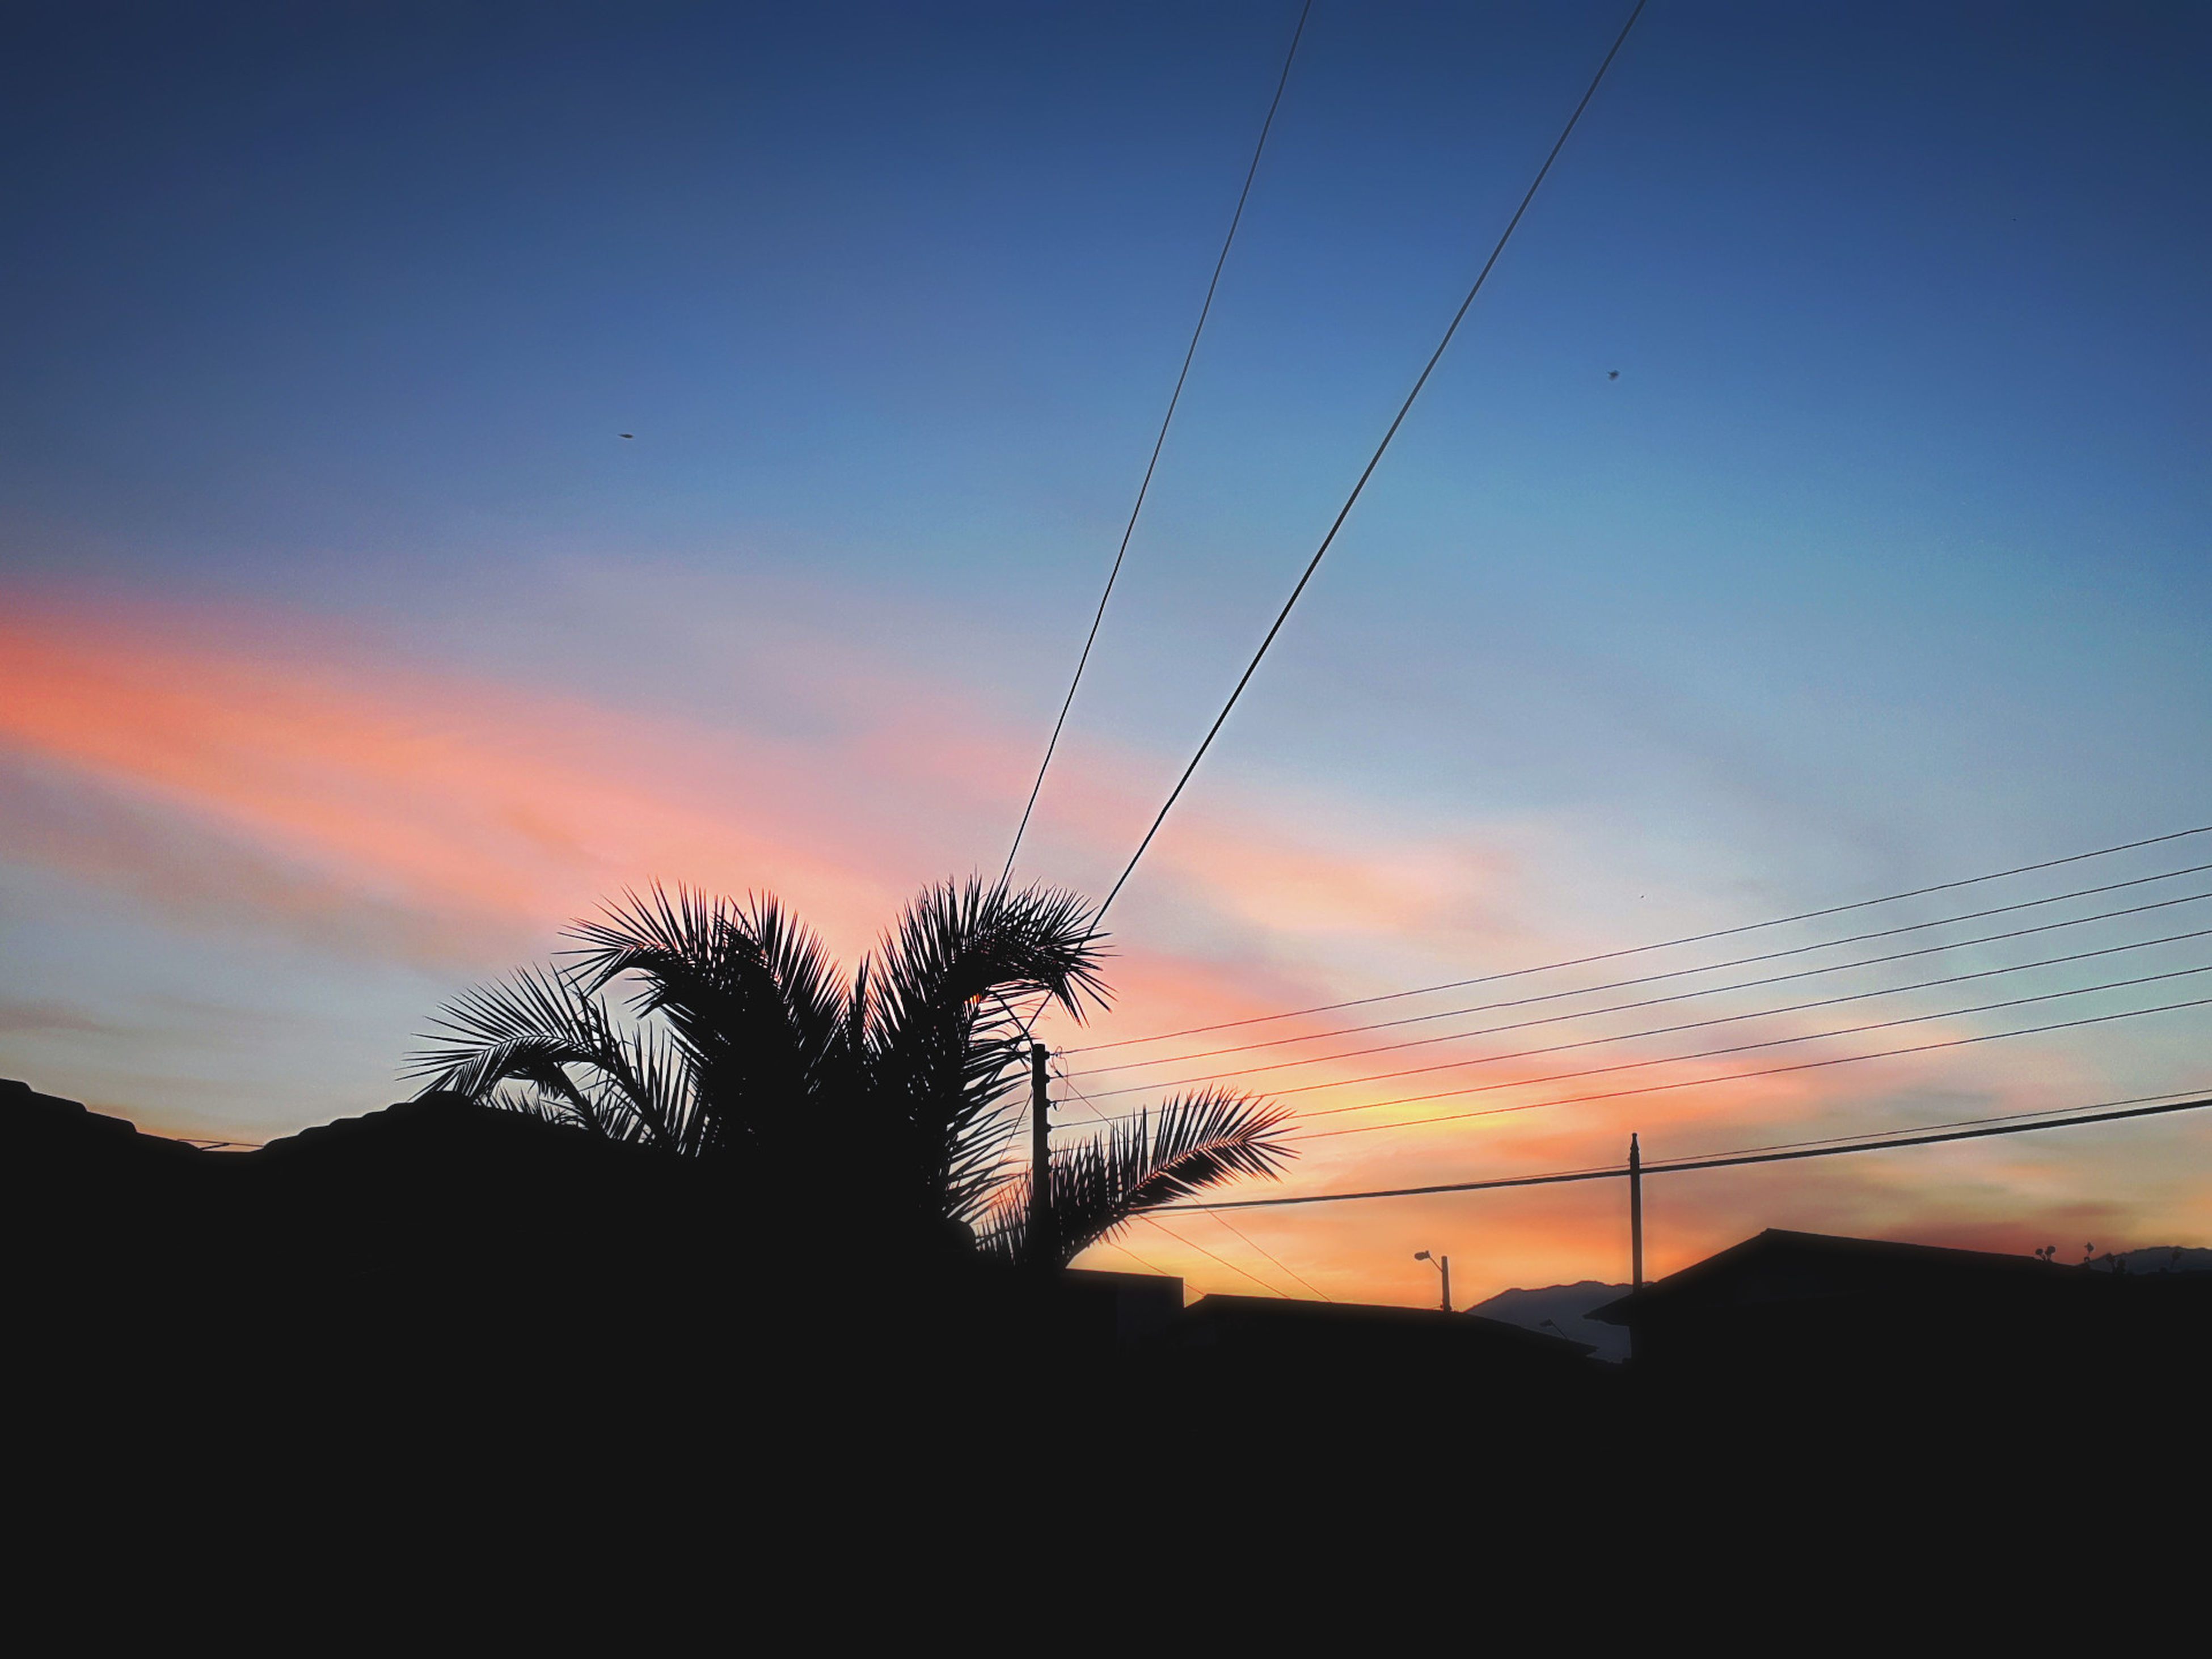 sunset, silhouette, tranquil scene, nature, scenics, sky, beauty in nature, cable, tranquility, no people, tree, outdoors, landscape, low angle view, day